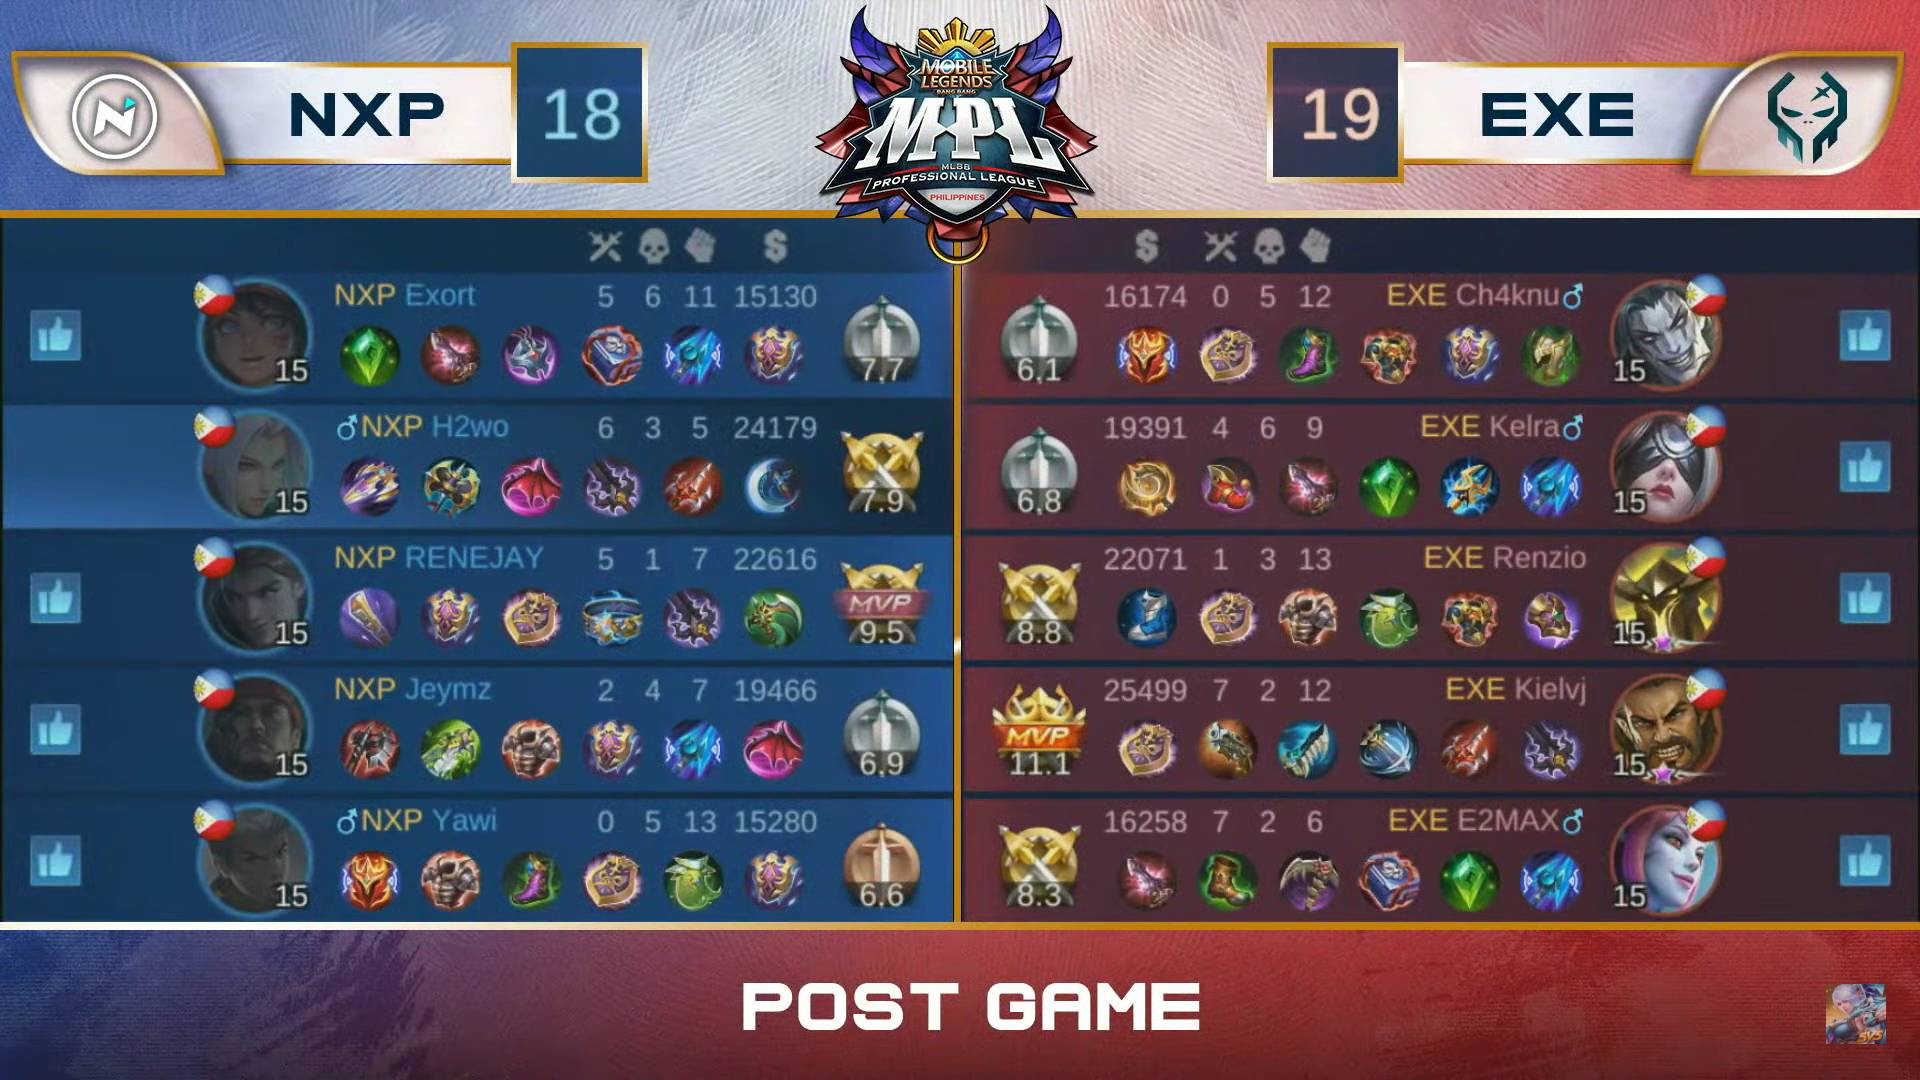 MPL-PH-Season-7-Nexplay-def-Execration-Game-1 Yawi's Akai plays big as Nexplay deals Execration fifth straight loss in MPL PH ESports Mobile Legends MPL-PH News  - philippine sports news